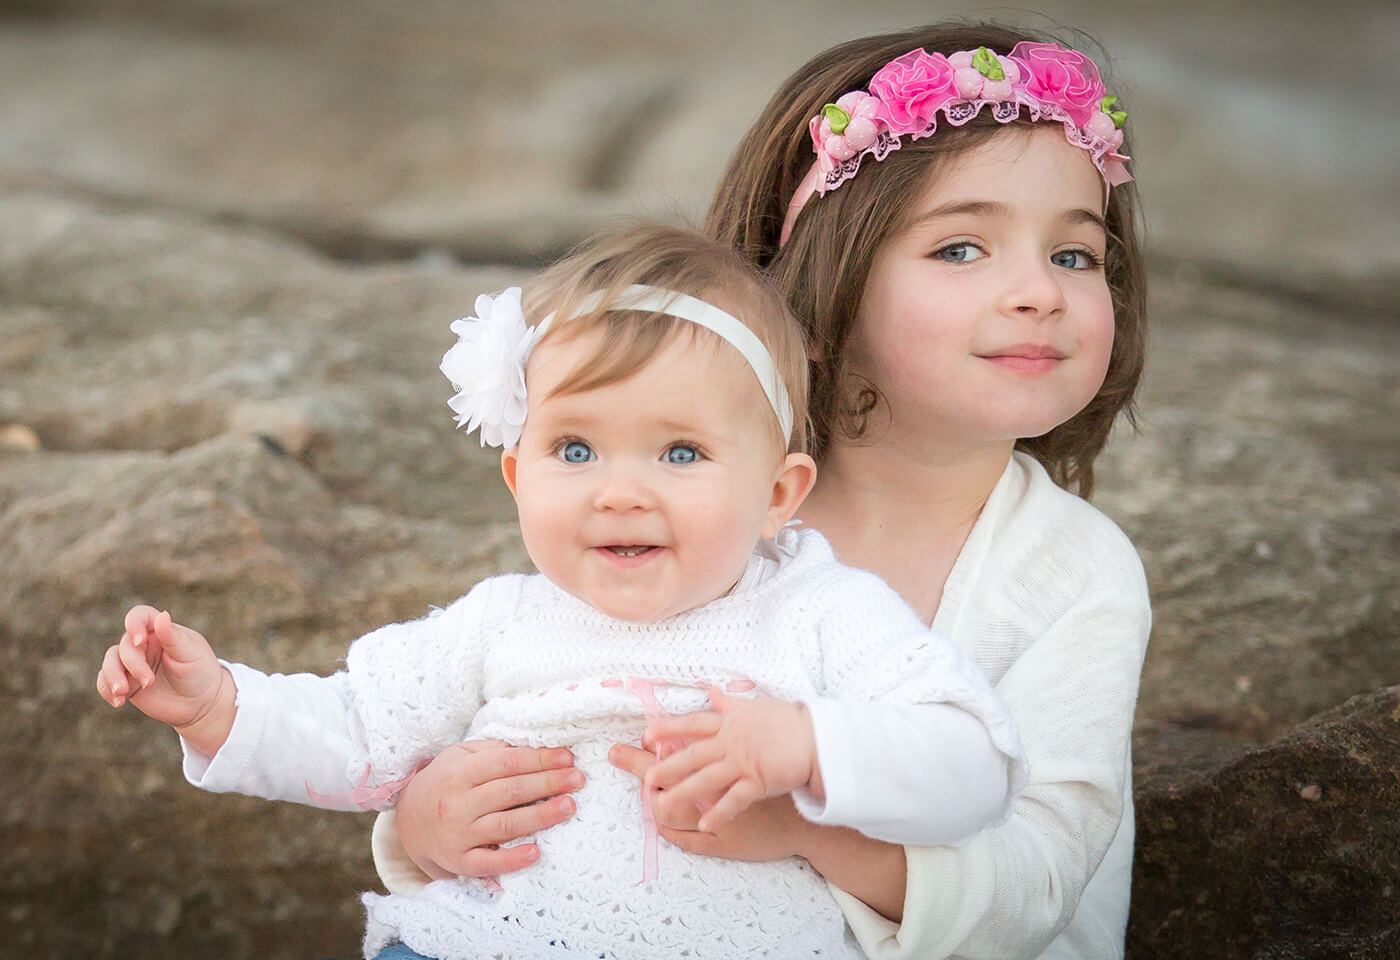 Girl with flower crown and her baby sister